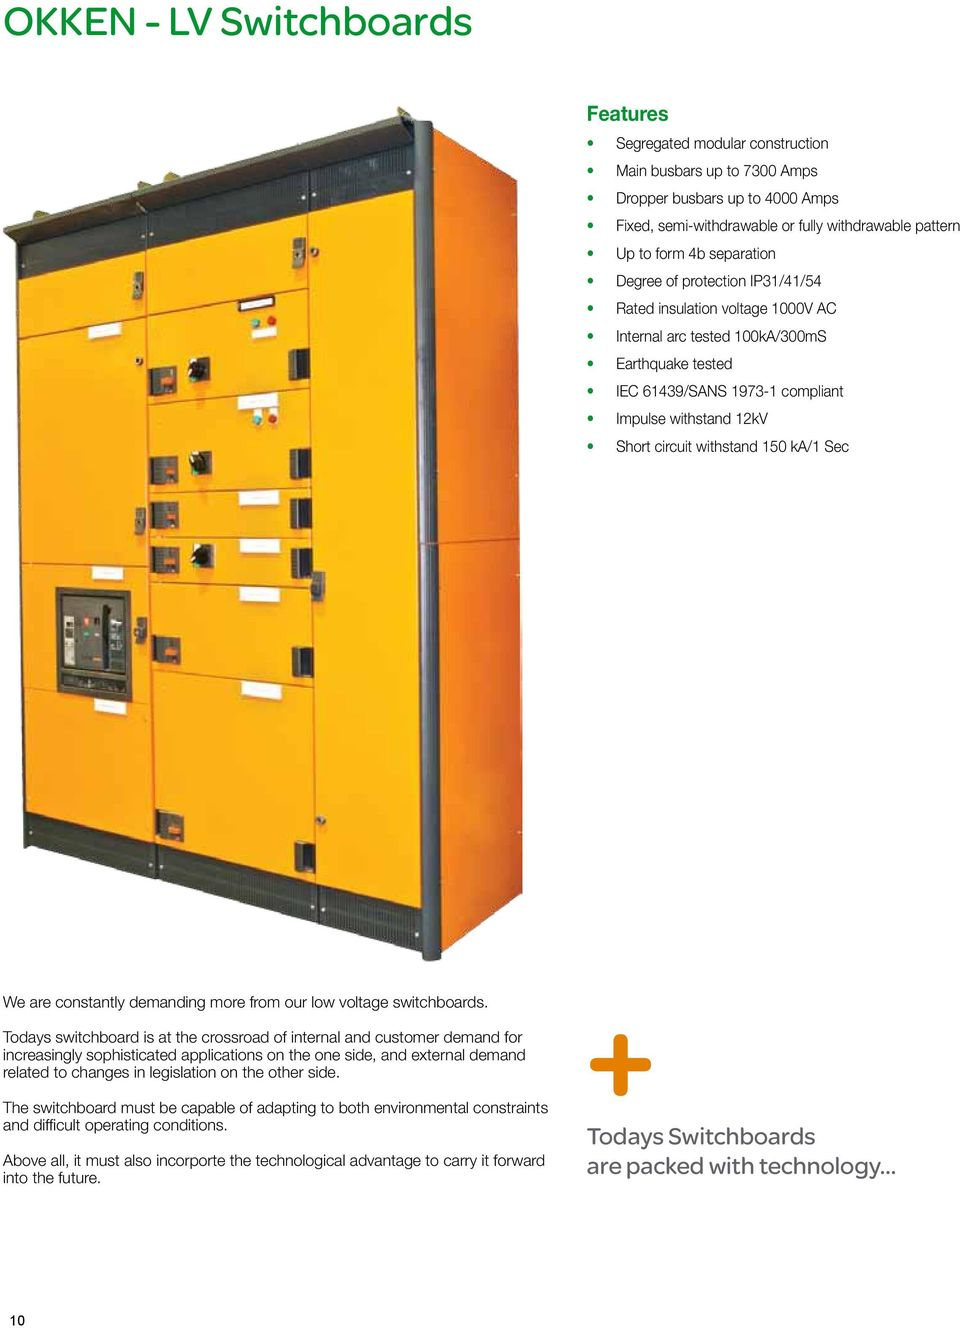 Lv Equipment For Industrial Solutions Pdf Shortcircuit Generatorshortcircuit Generatorsec Electric Ka 1 Sec We Are Constantly Demanding More From Our Low Voltage Switchboards